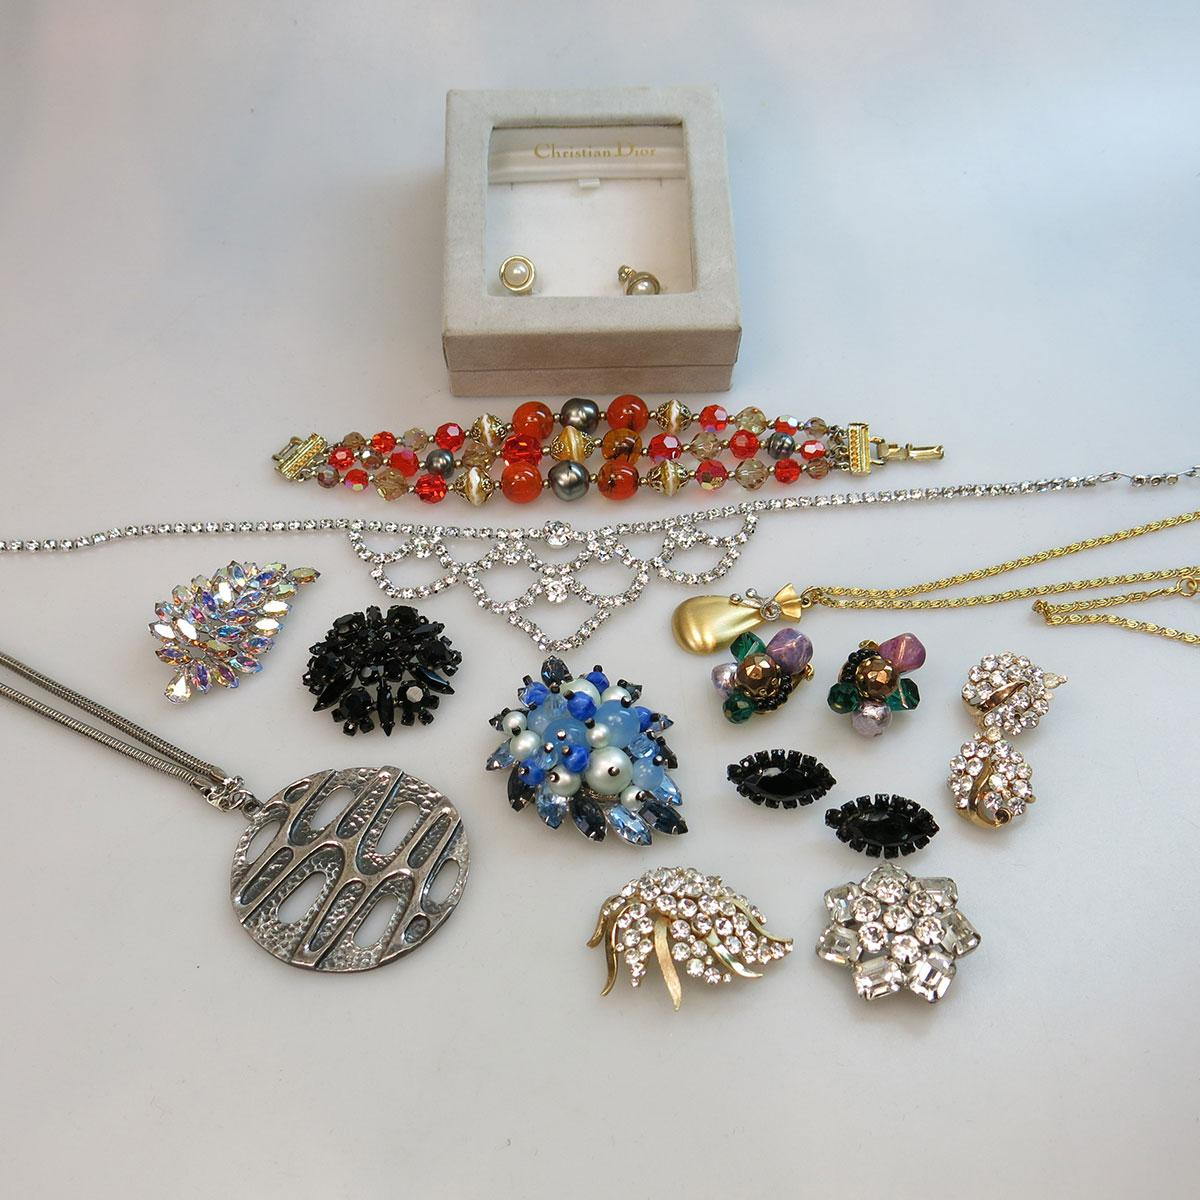 Small Quantity Of Costume Jewellery